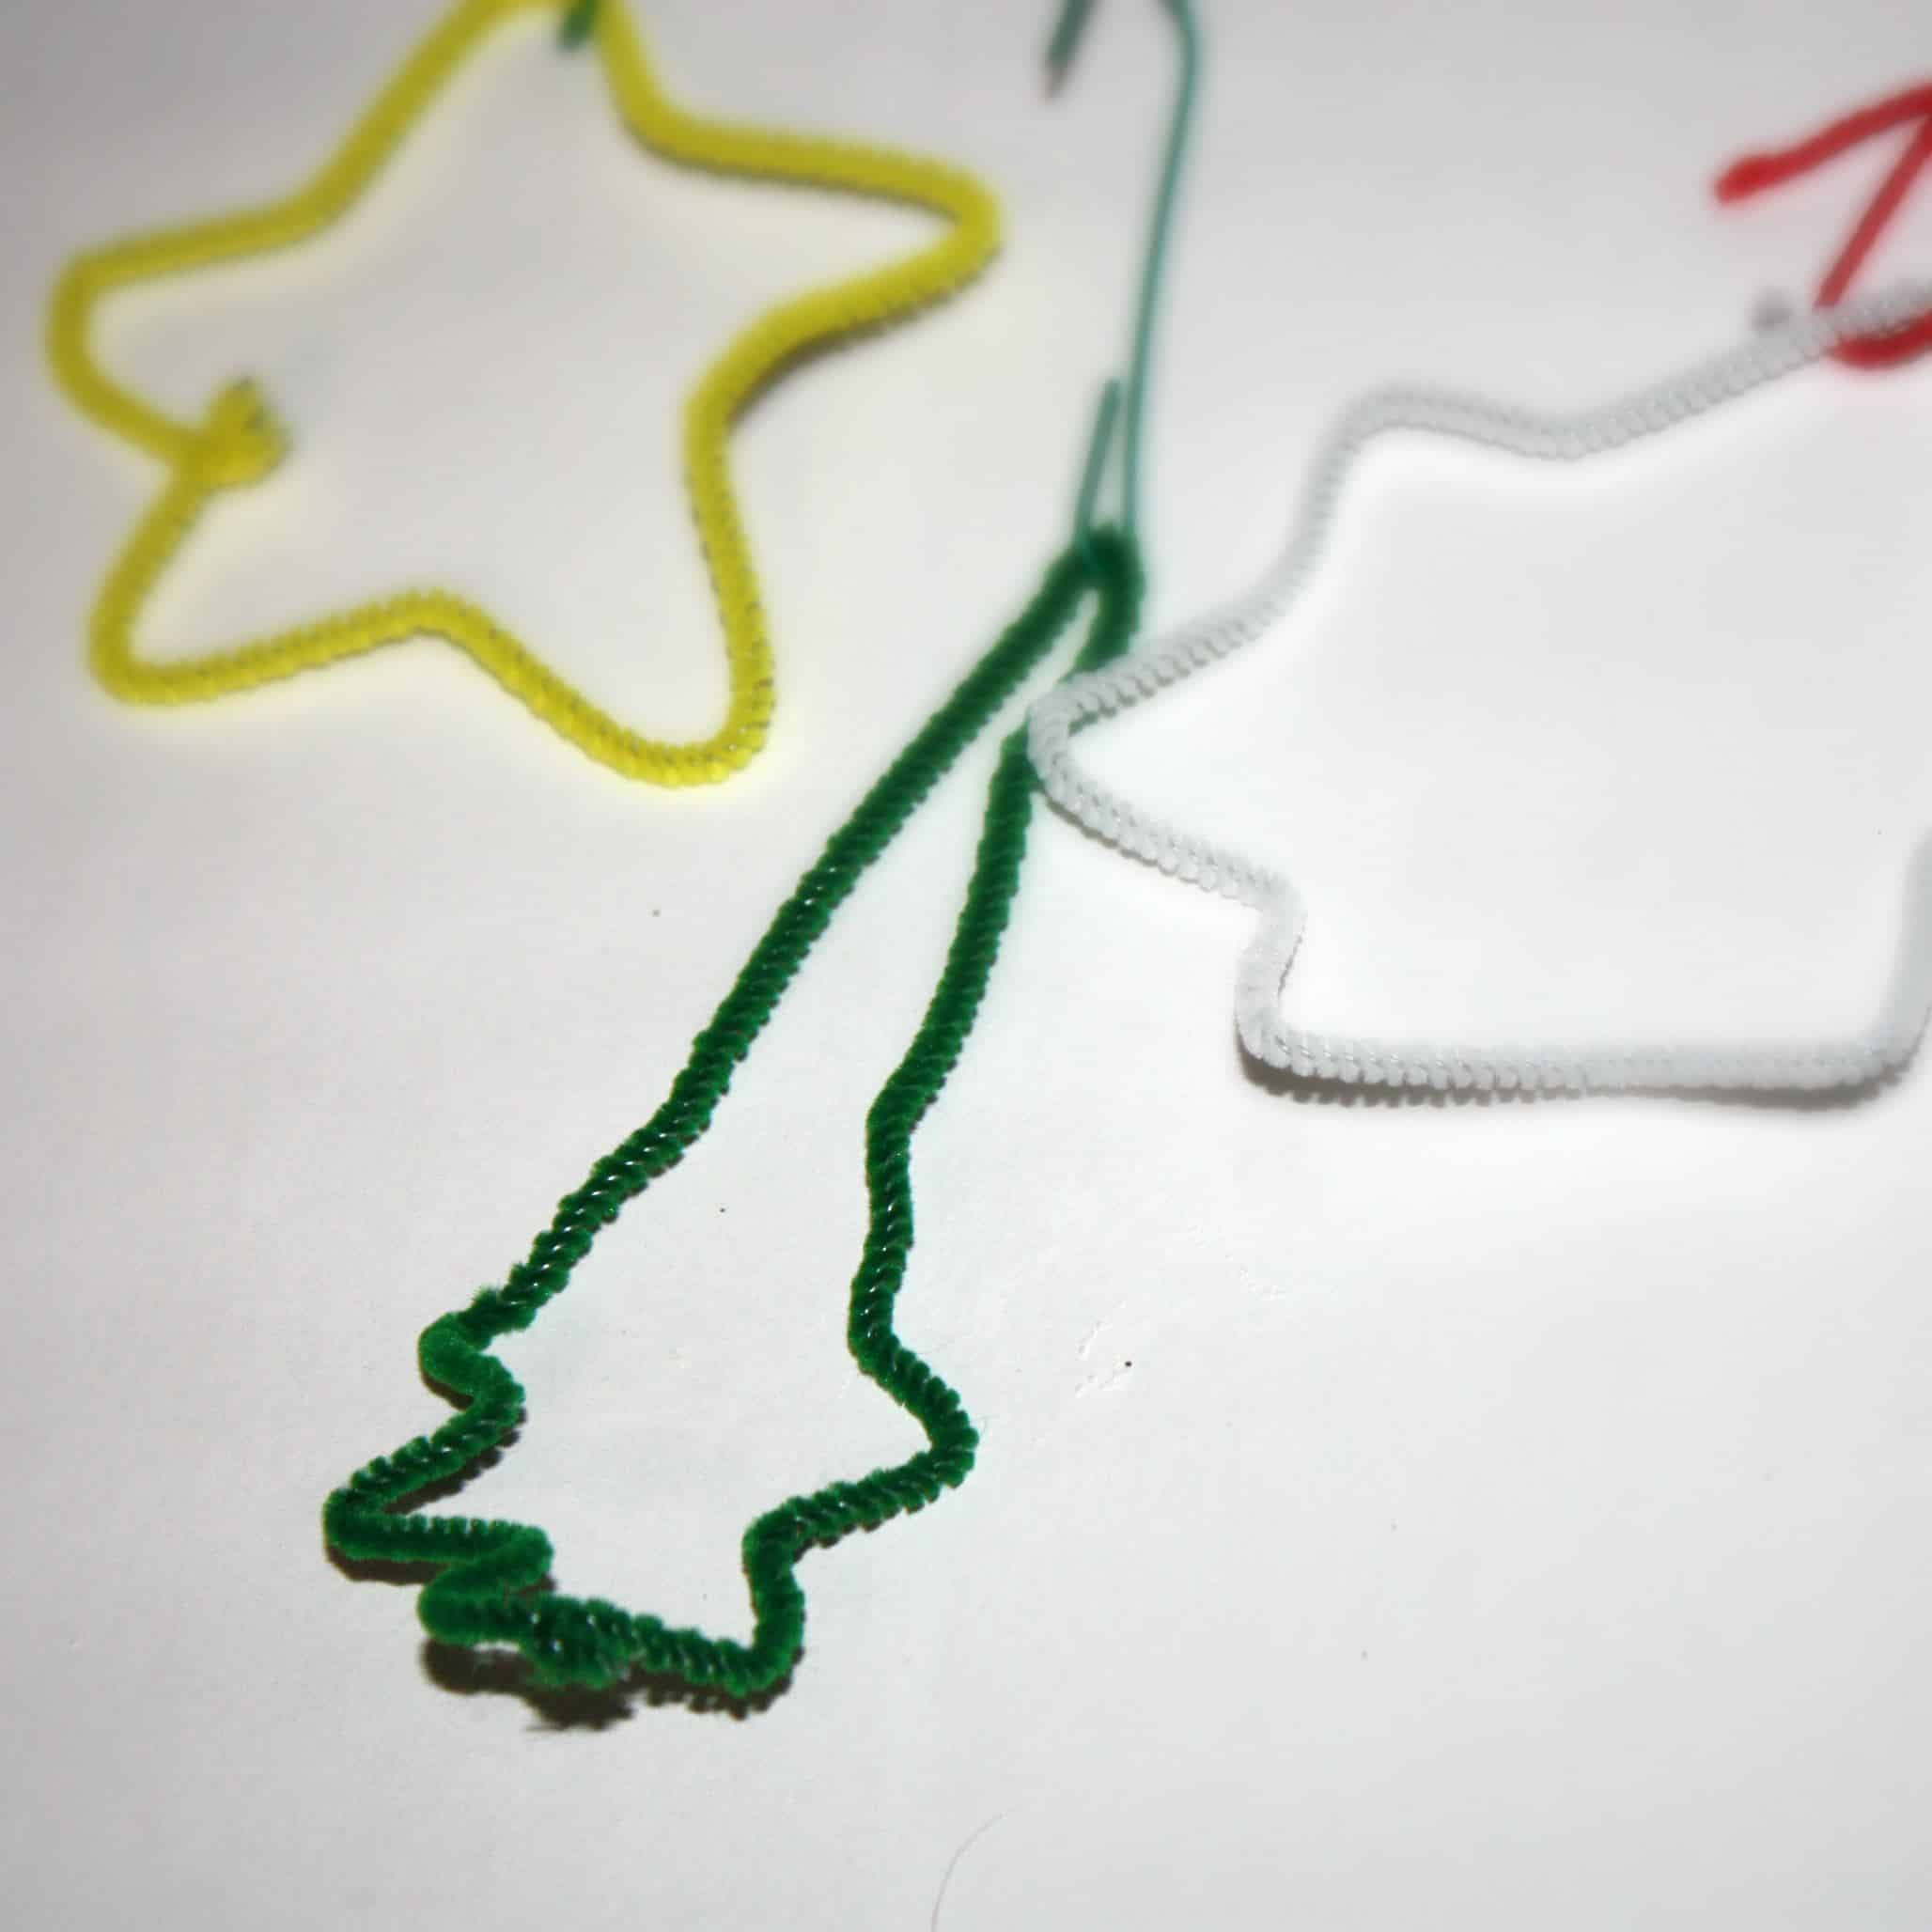 These kid made ornaments are made out of pipe cleaners wrapped around cookie cutters! So simple and easy for kids to make on their own!